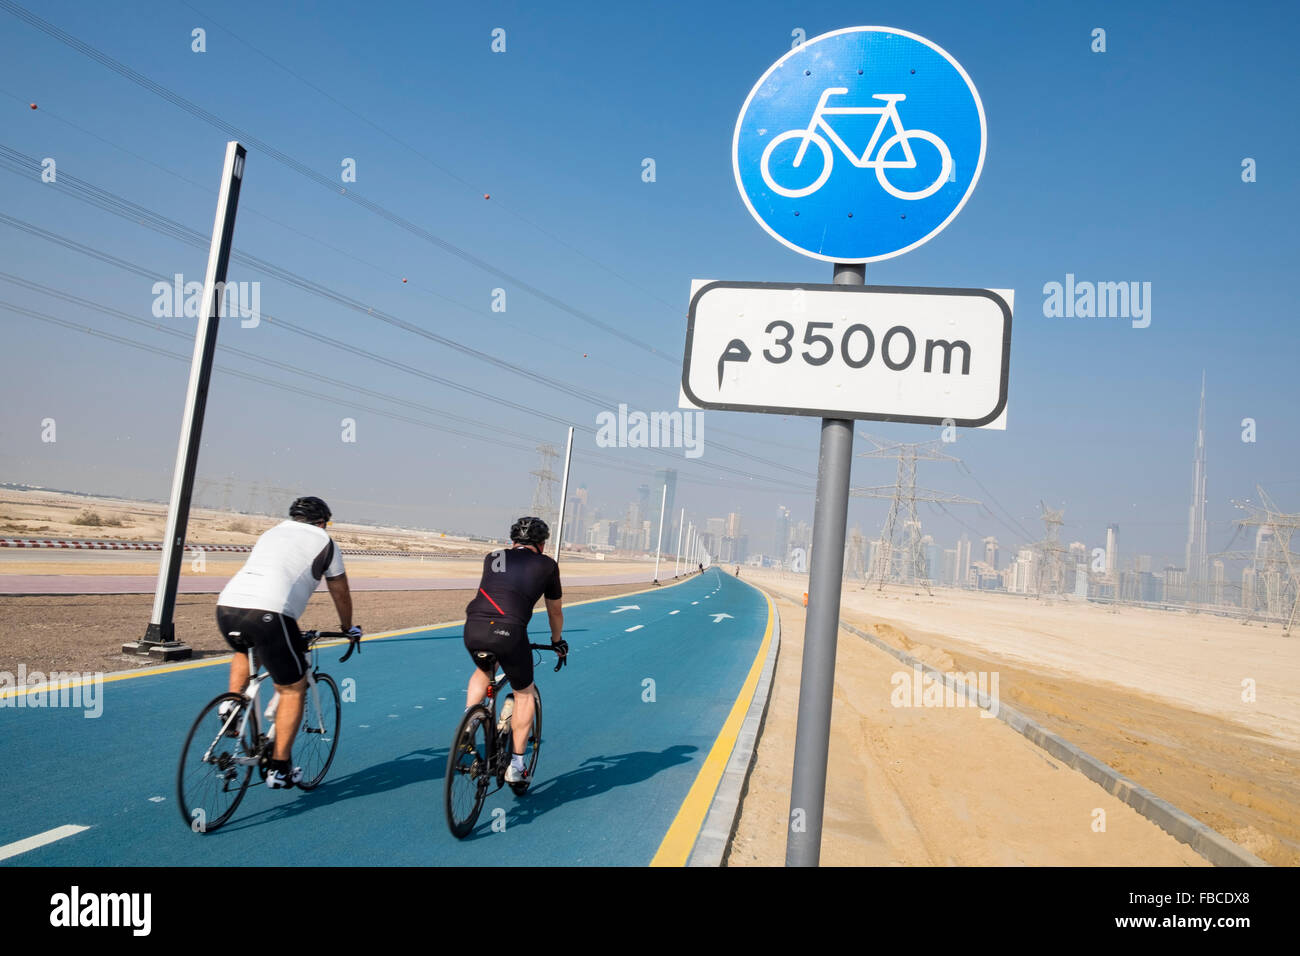 Cyclists on new cycle track at District One at new property development in Dubai United Arab Emirates - Stock Image